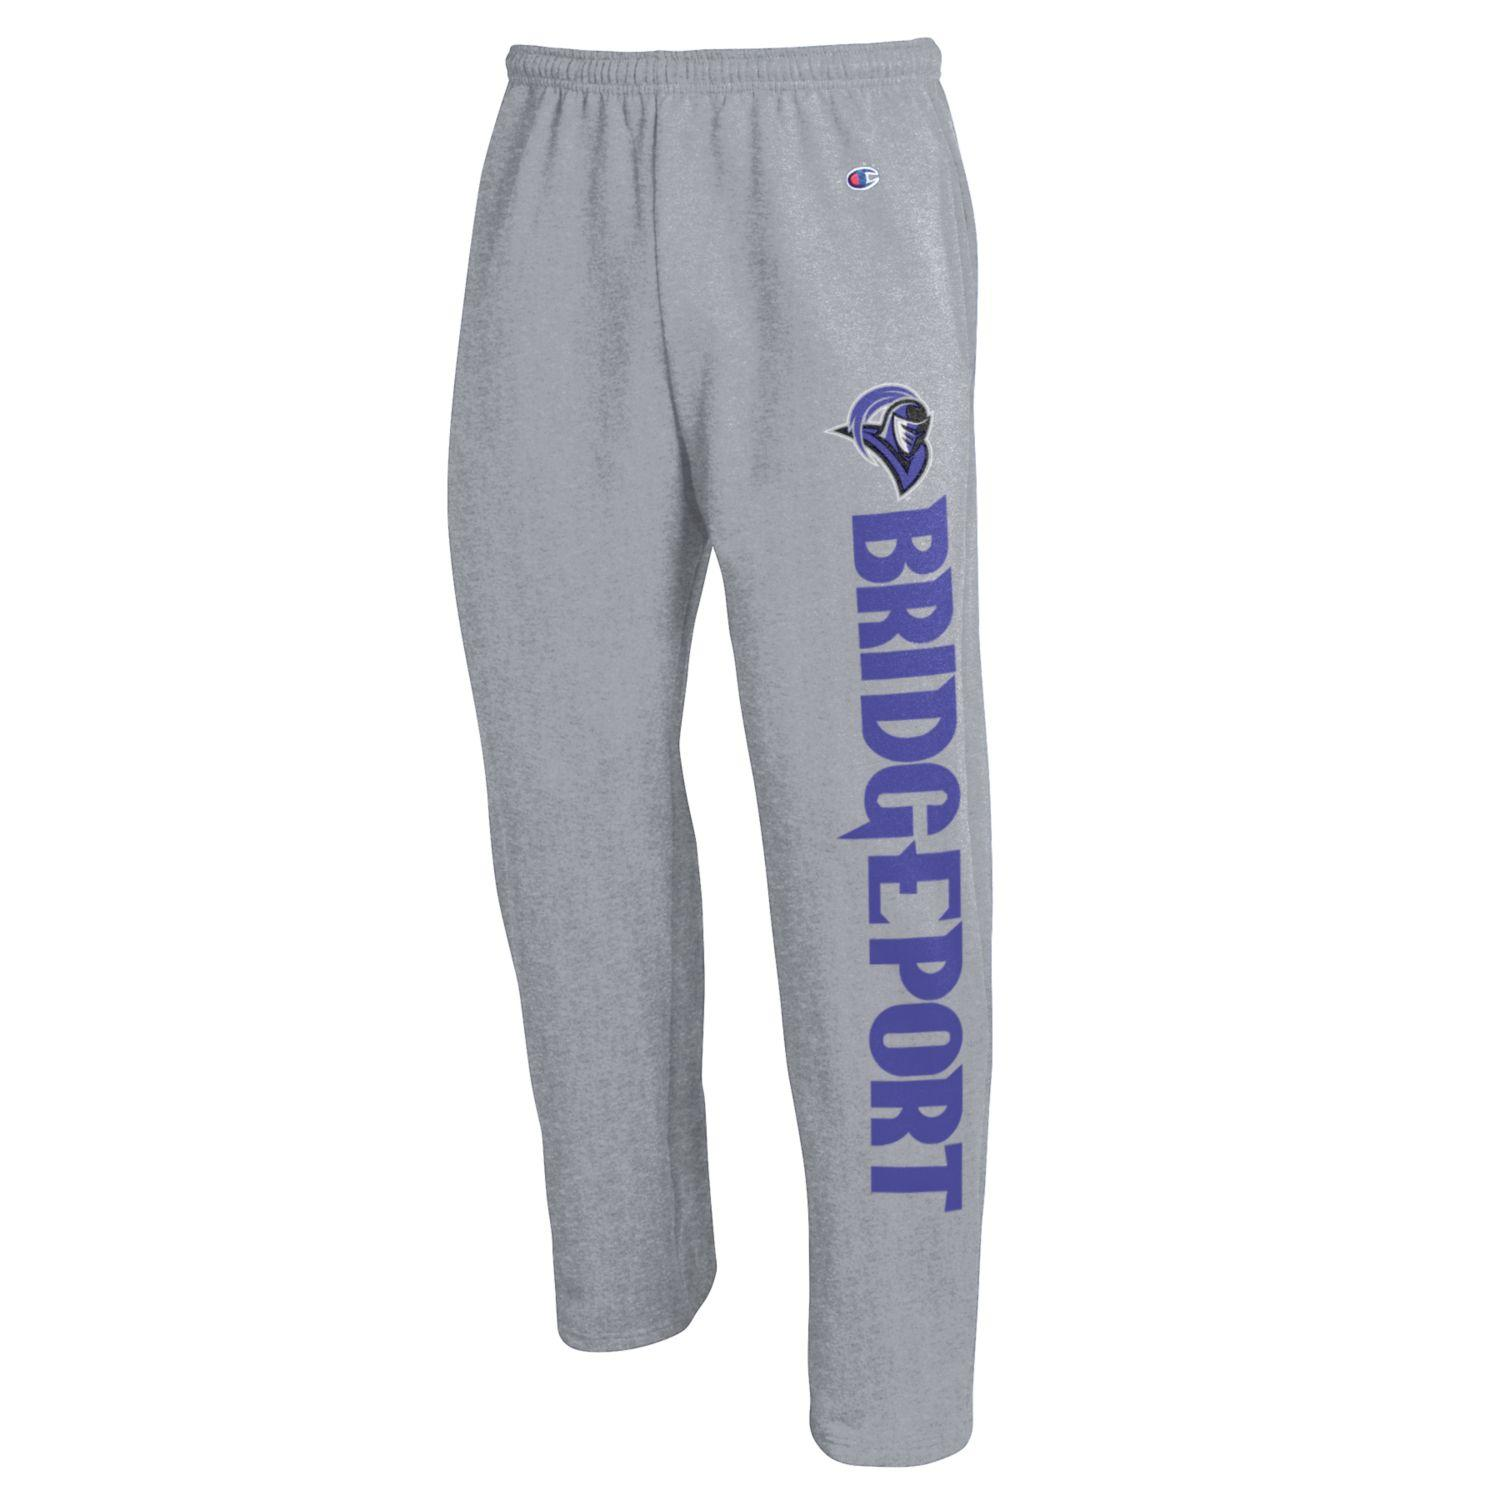 Champion Pants - Grey